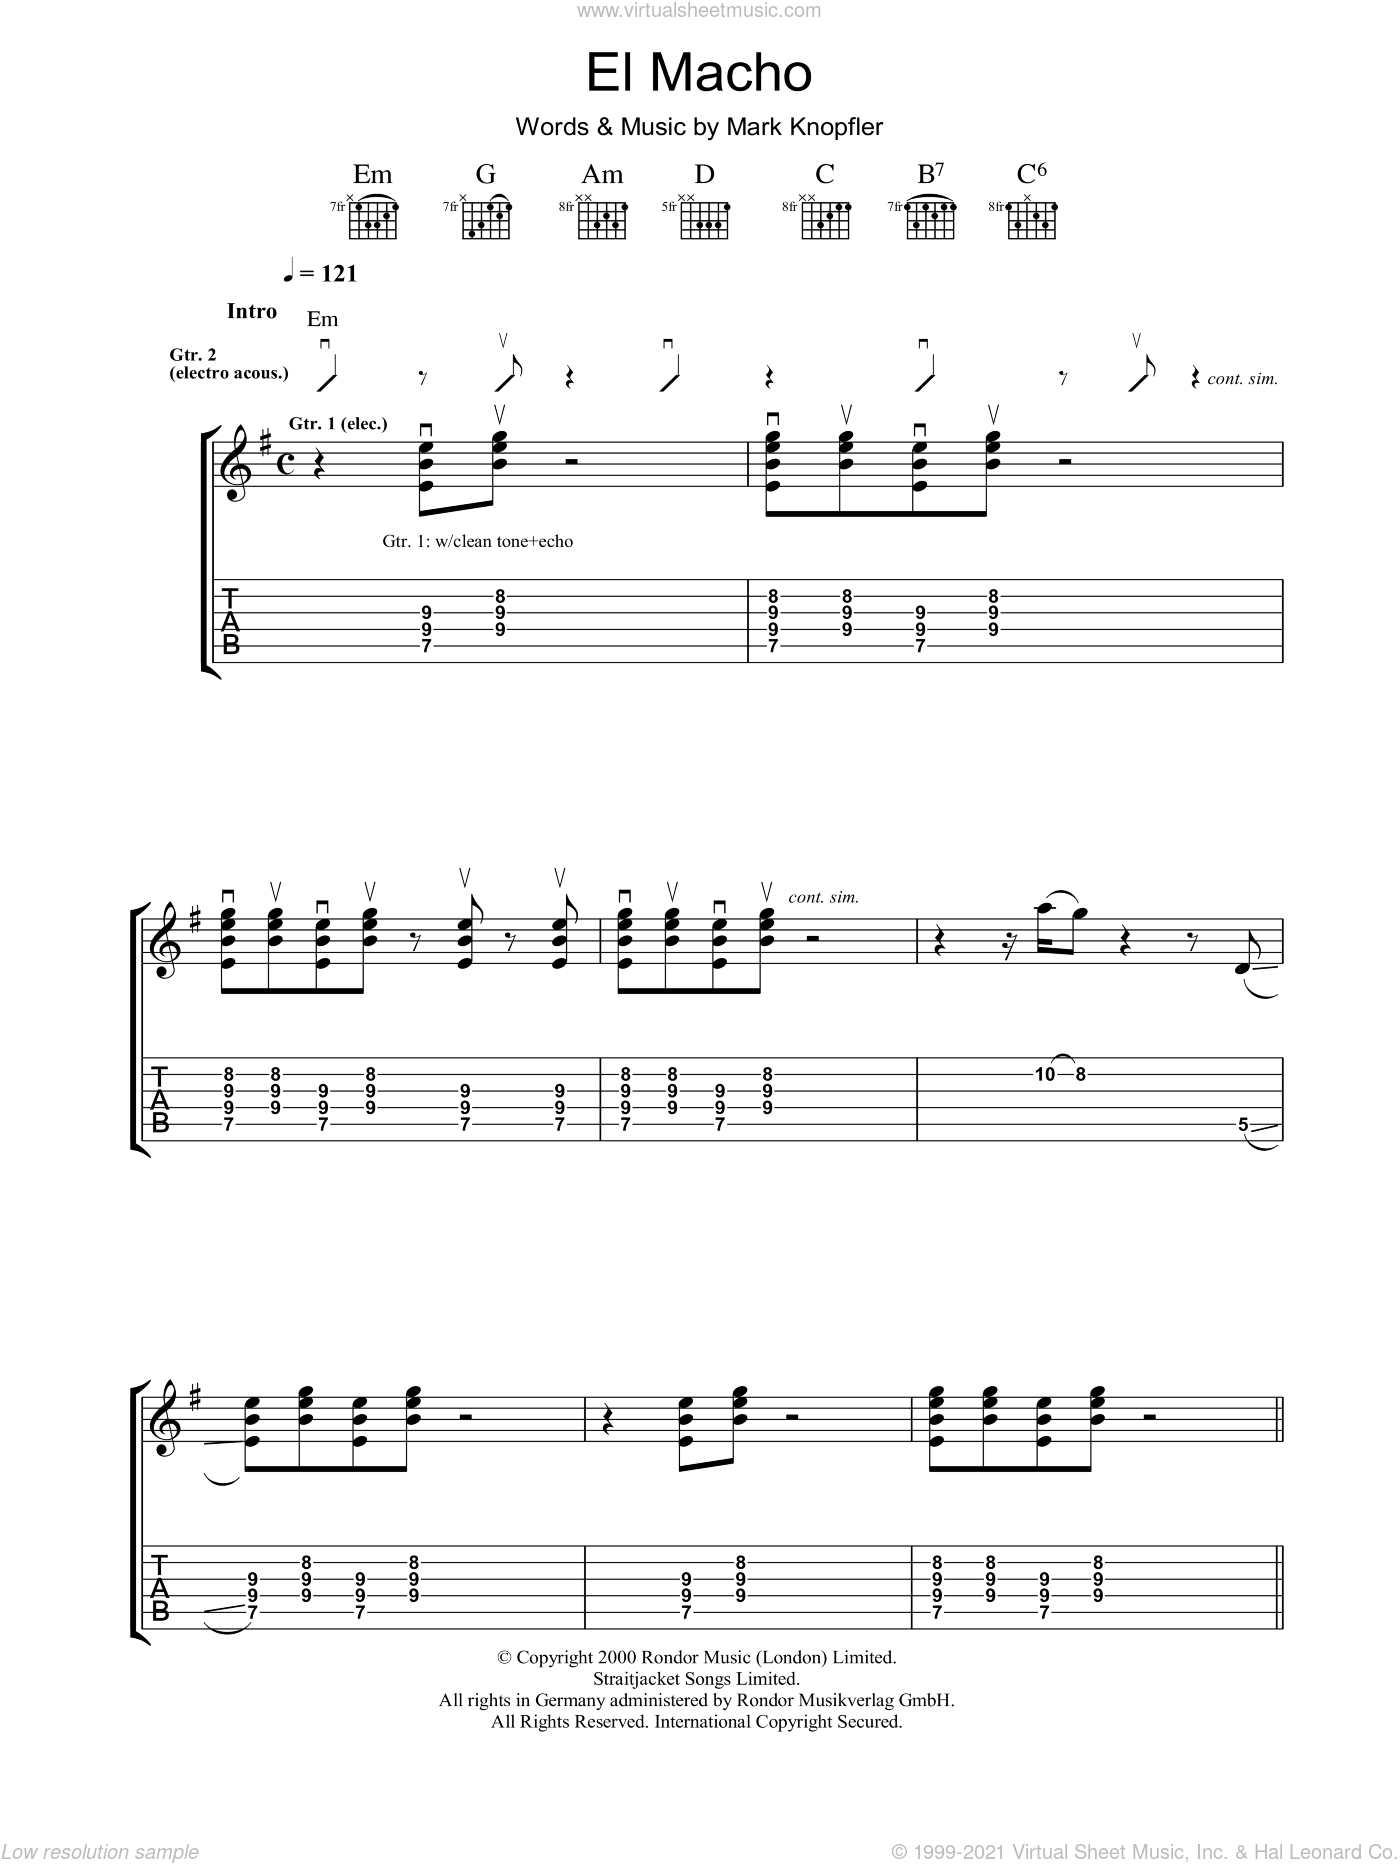 Knopfler - El Macho sheet music for guitar (tablature) [PDF]